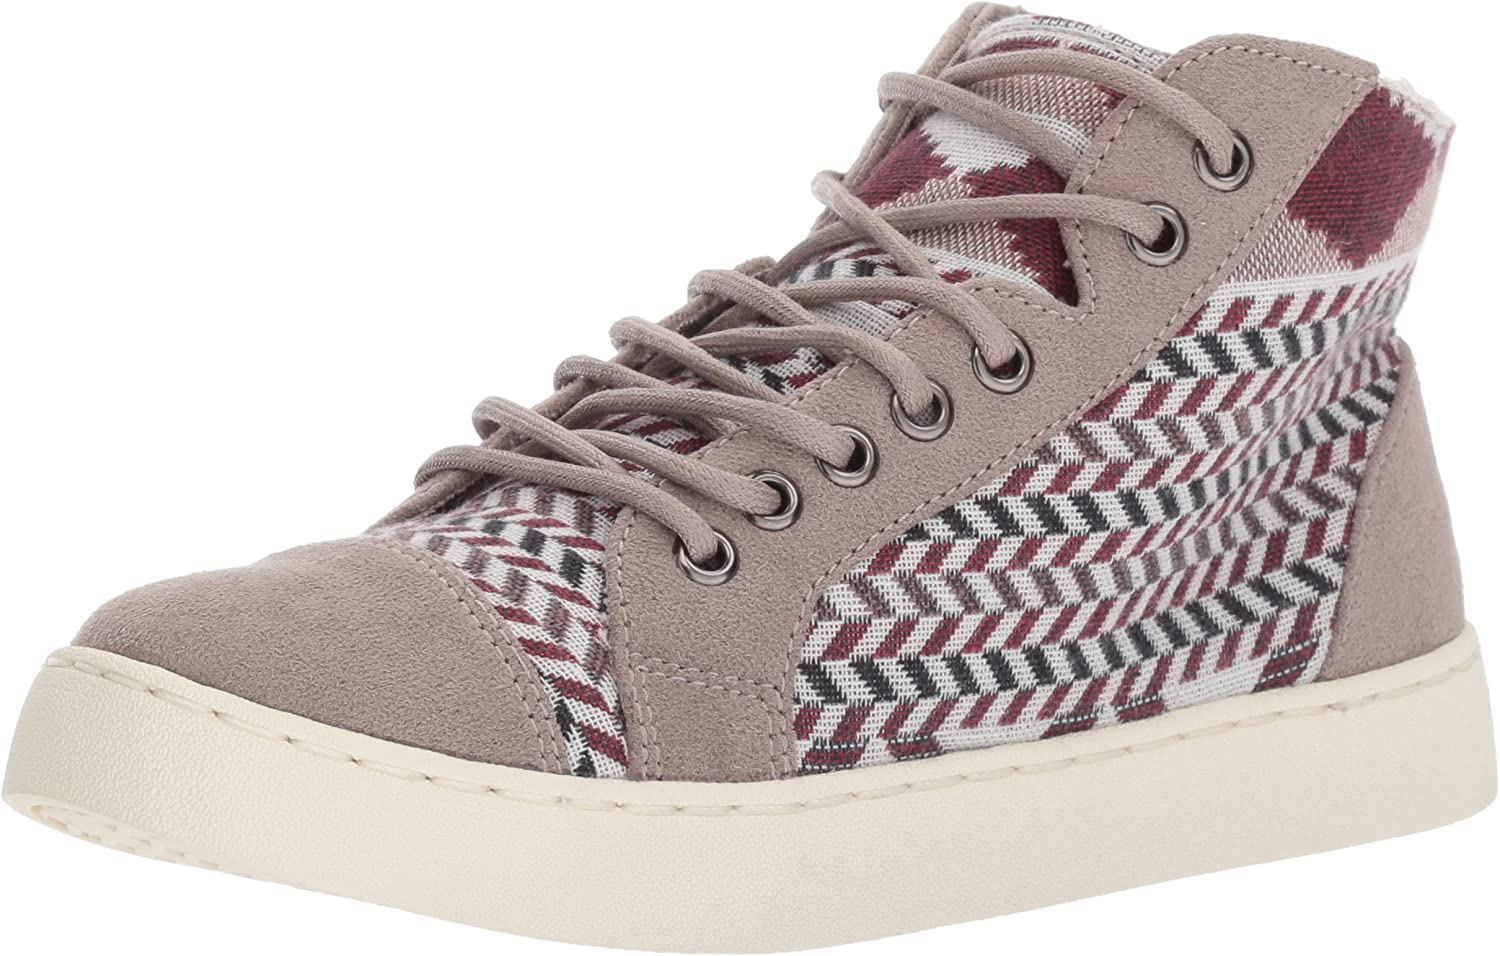 Roxy Womens Dayton Fashion Sneaker